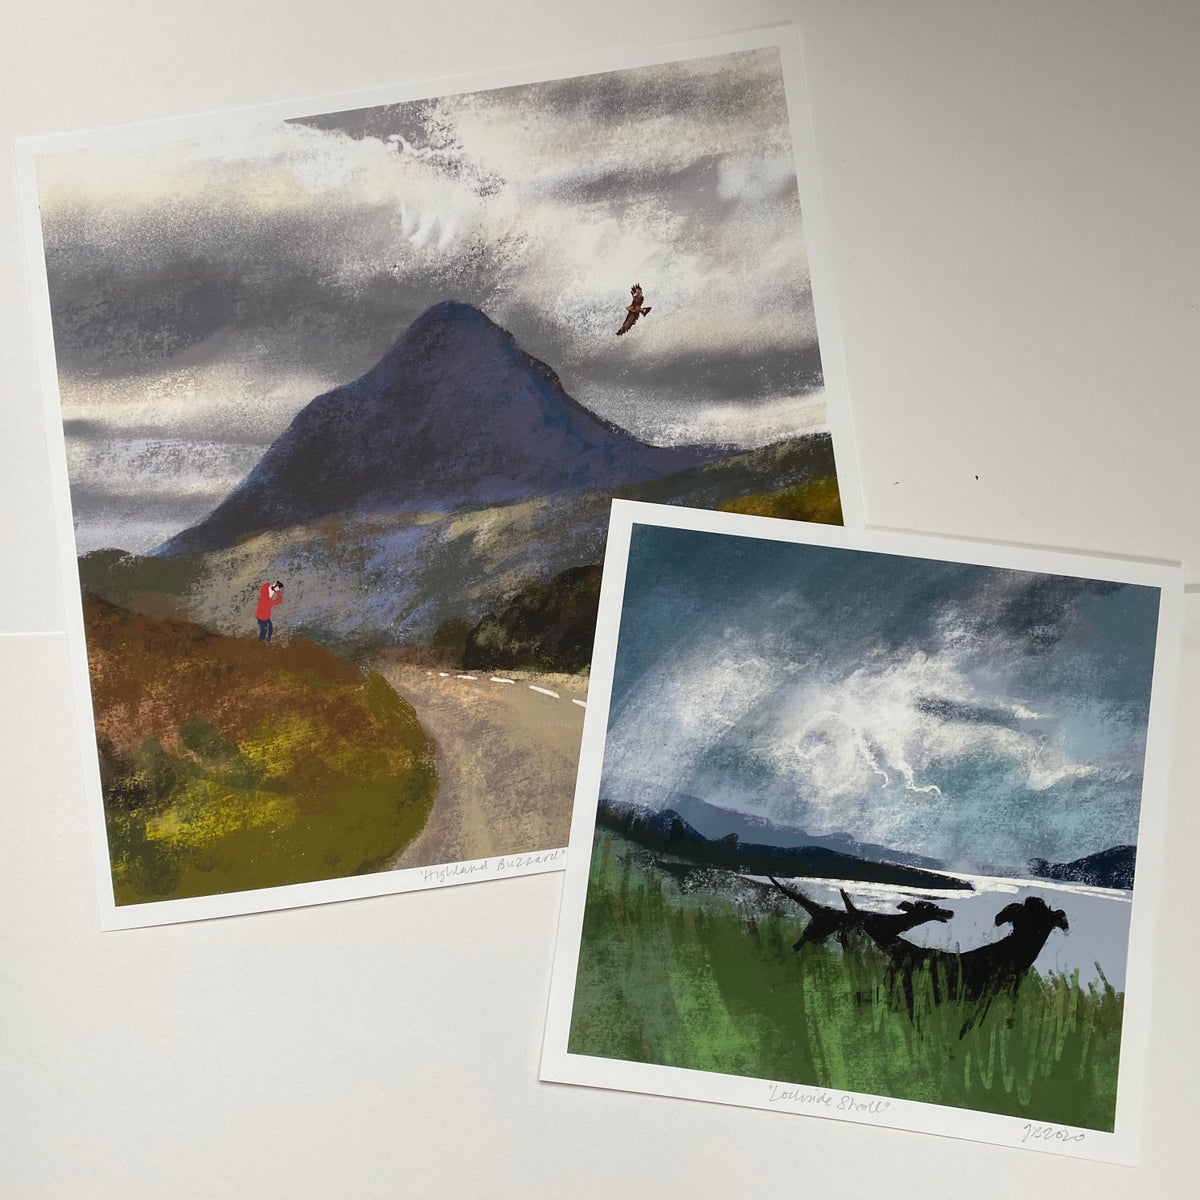 Image of 'Highland Buzzard' archive quality print